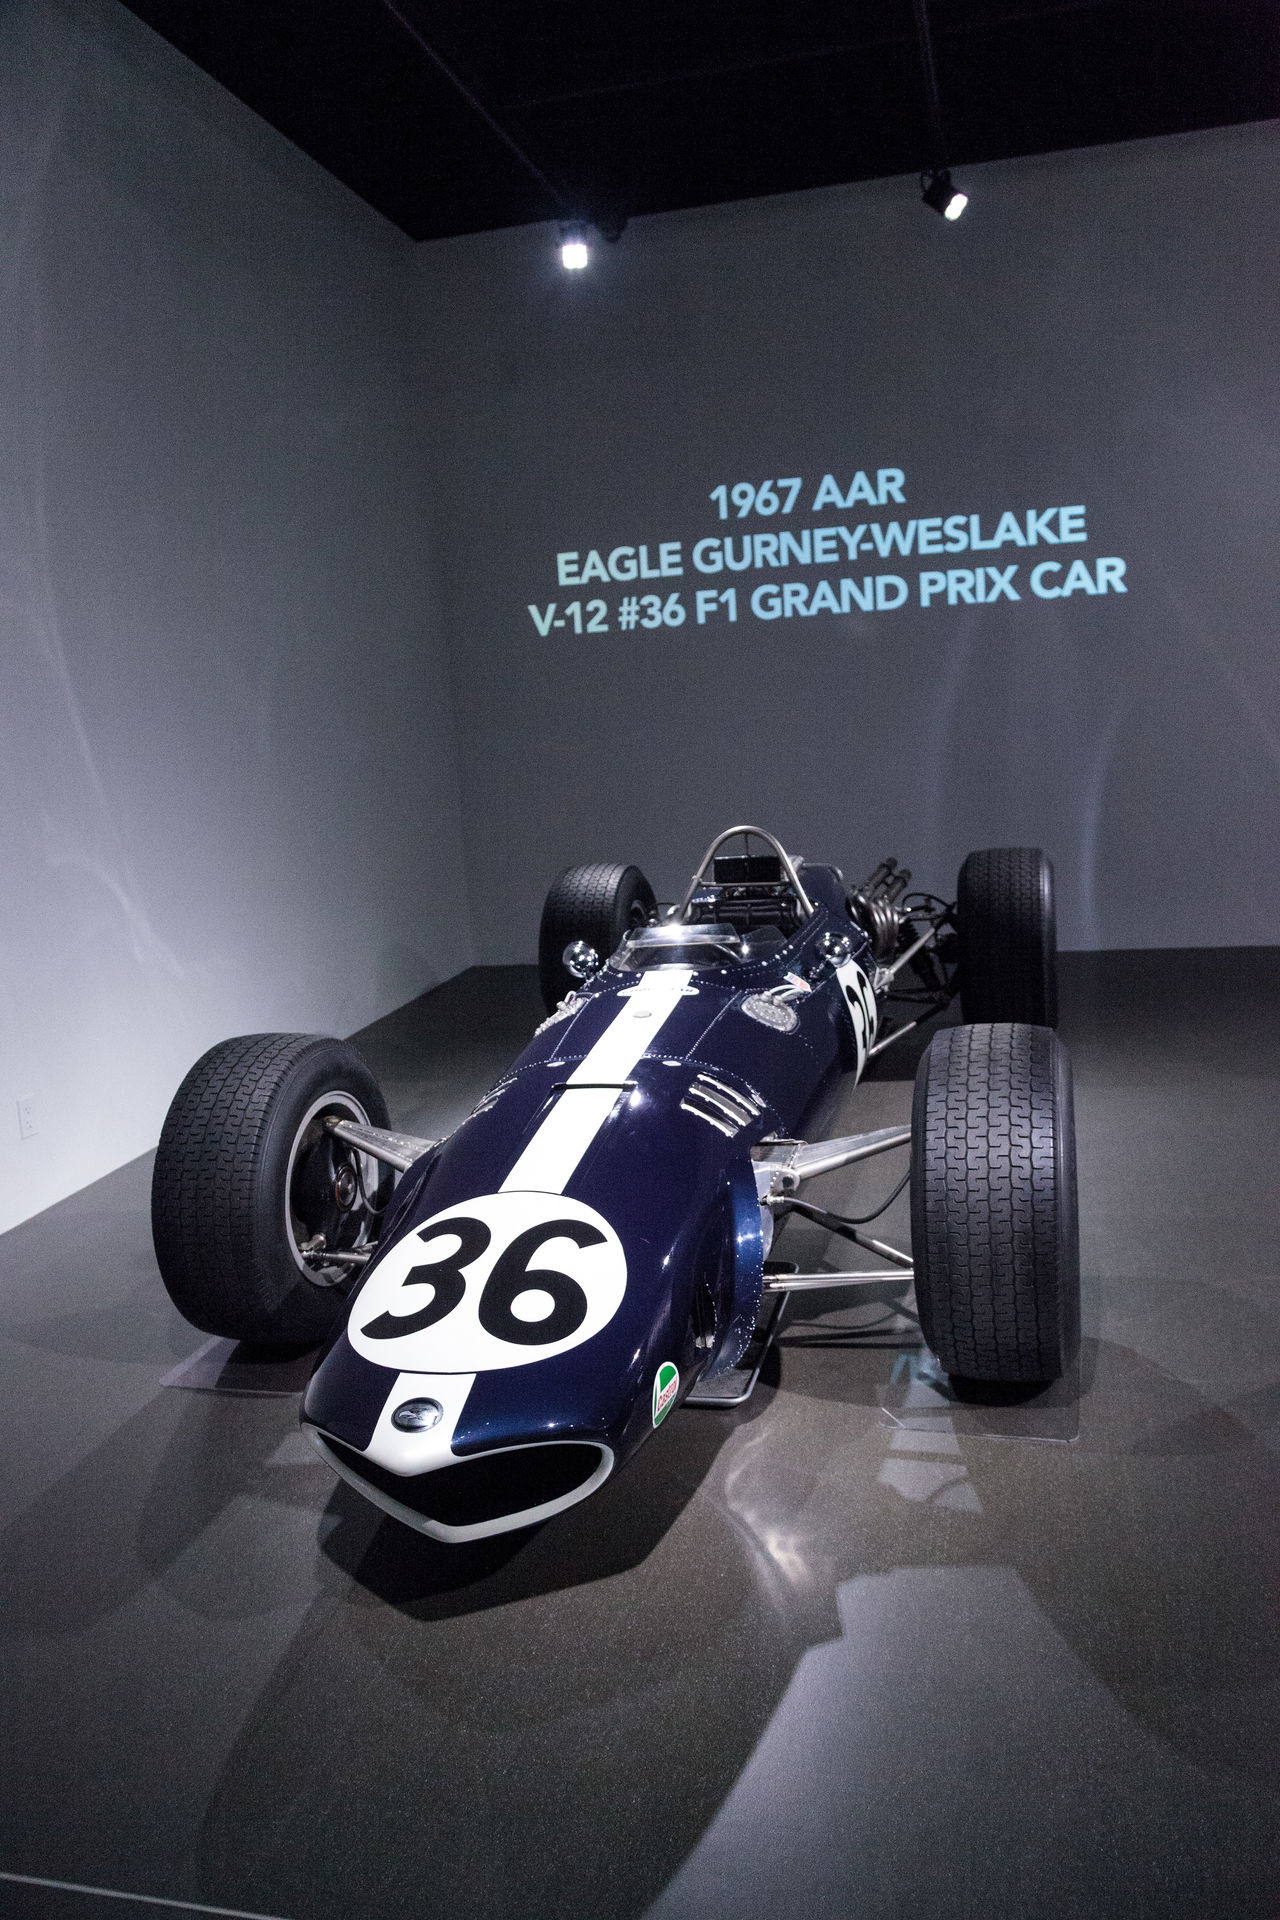 Los Angeles, CA, USA - March 4, 2017: Blue and white 1967 AAR Eagle Gurney-Weslake V-12 Grand Prix car from the Collier collection at the Petersen Automotive Museum in Los Angeles, California, United States. Editorial only. 1967 AAR EAGLE Antique Classic Car Day Eagle Grand Prix  Gurney-Weslake Indoors  No People Old Car Petersen Automotive Museum Race Car Racer Technology V-12